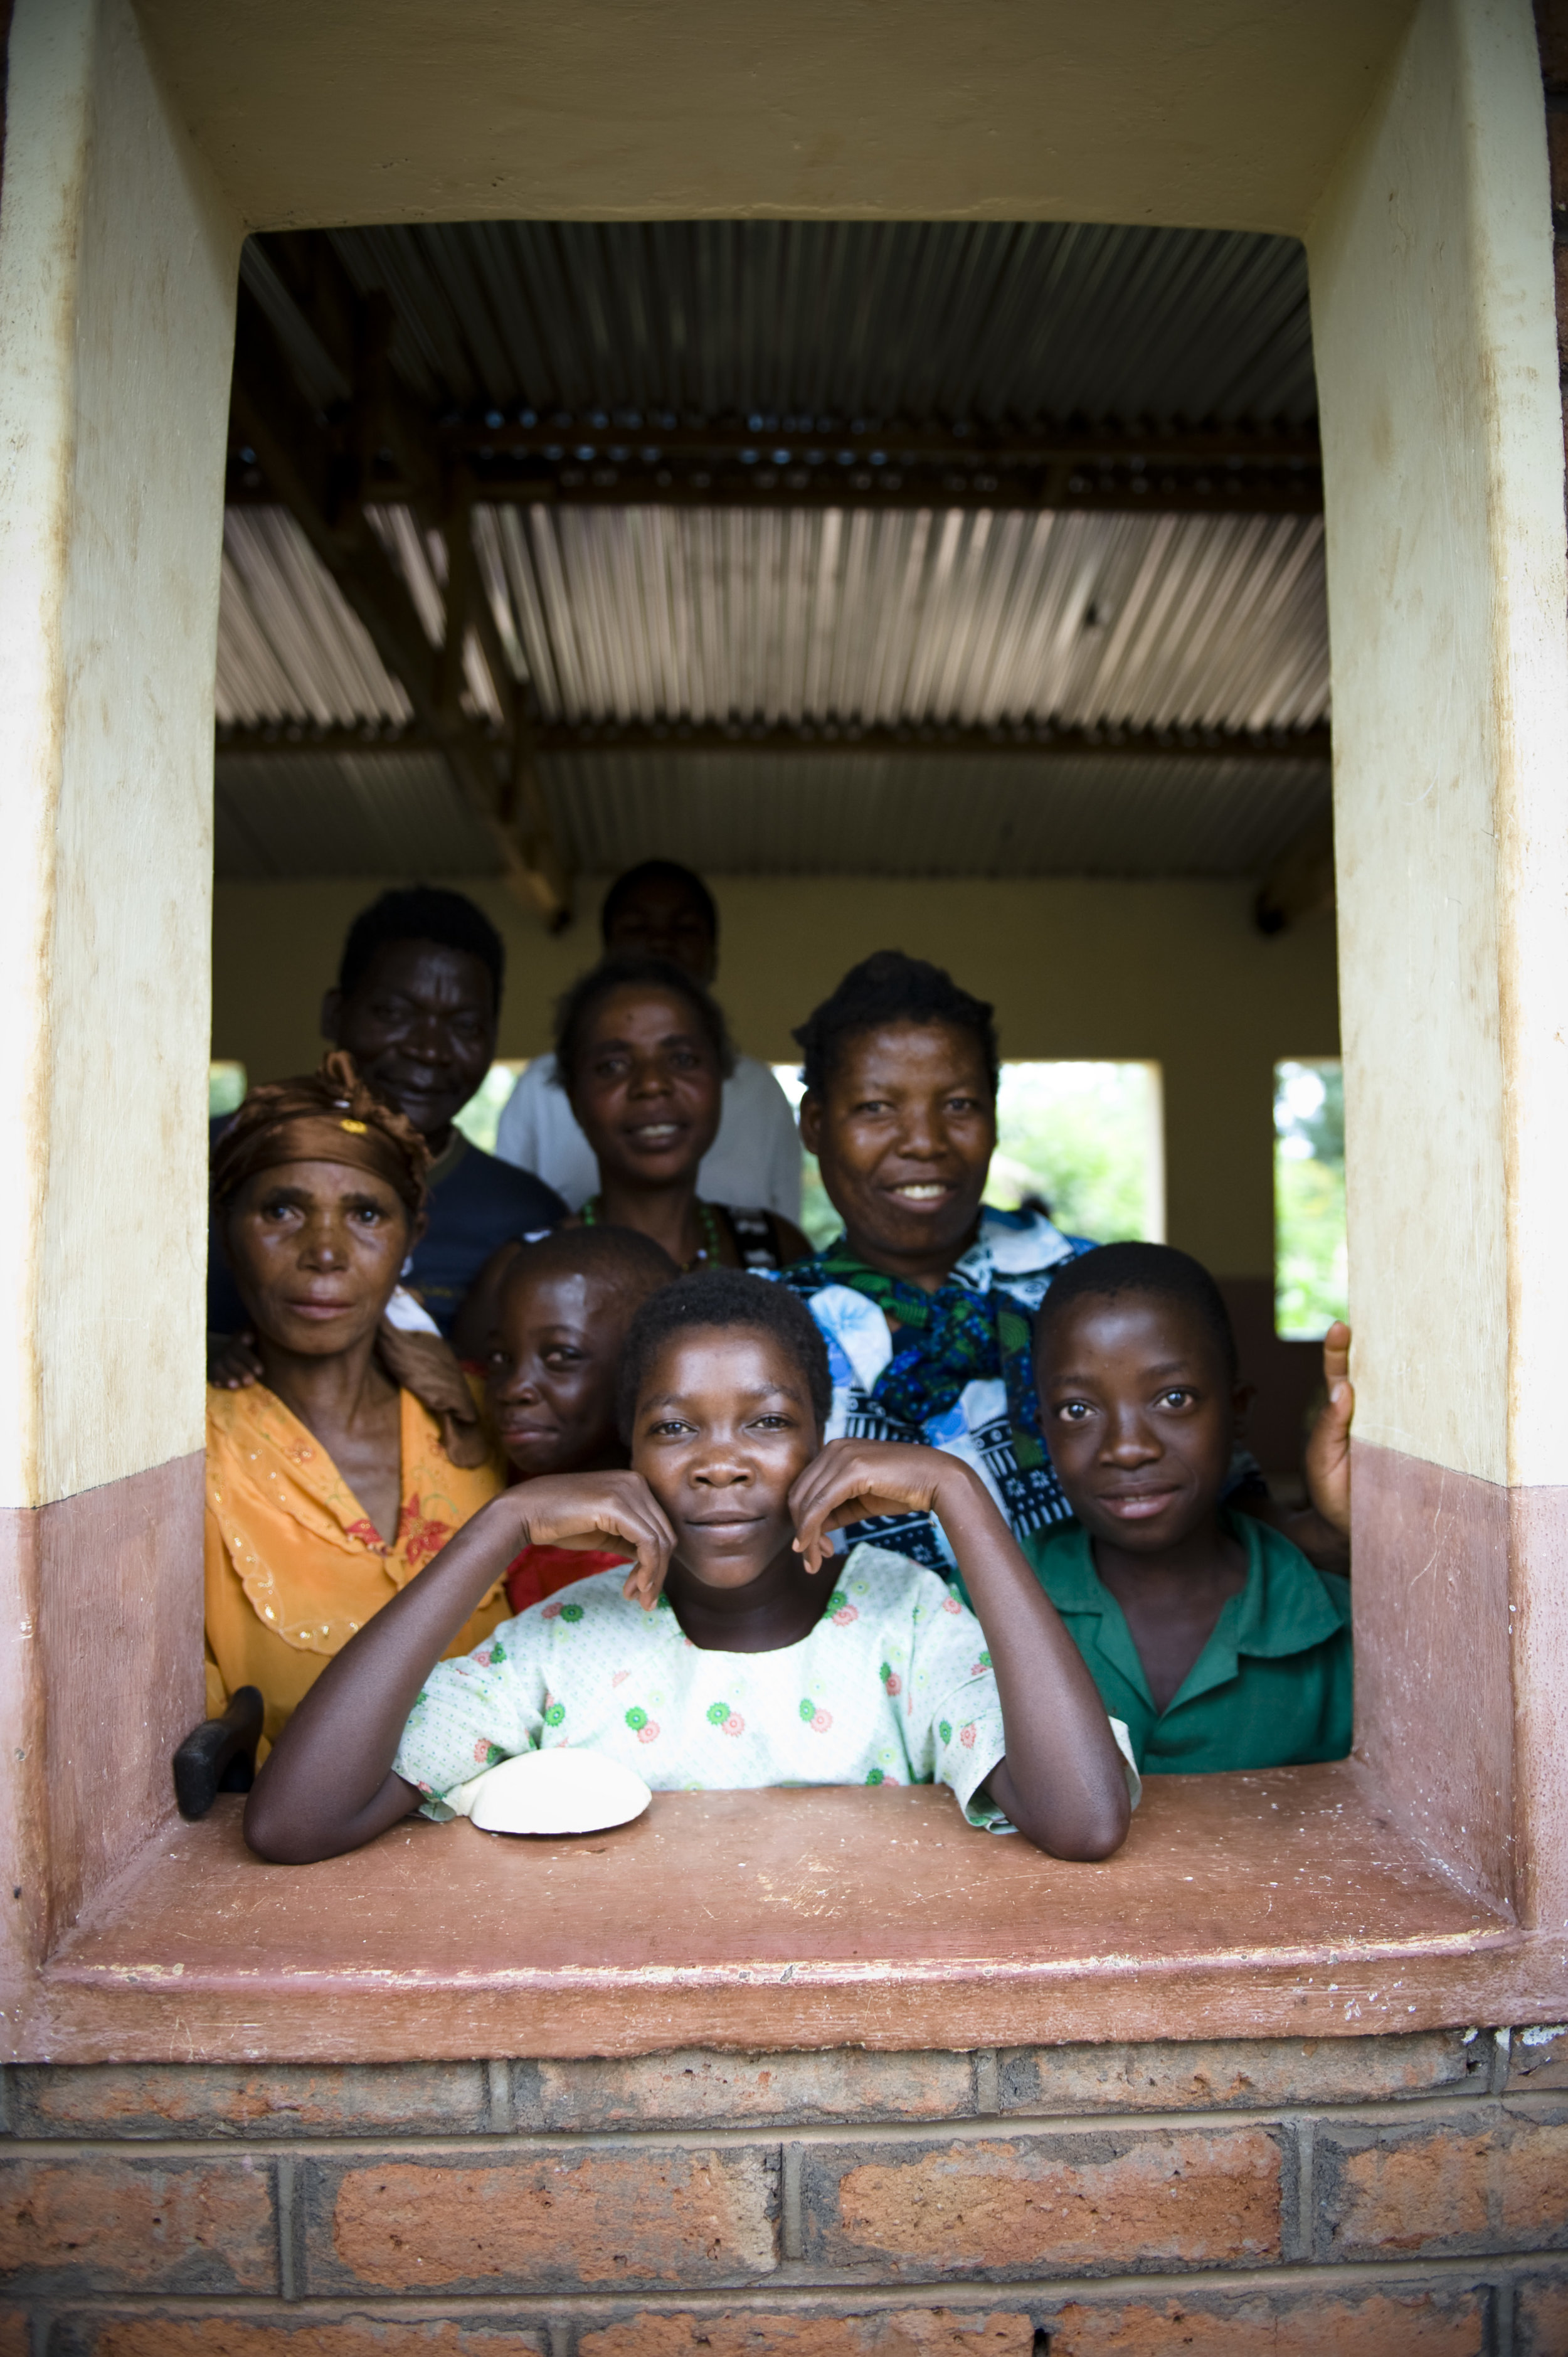 A group of African children and adults smile and look out a window